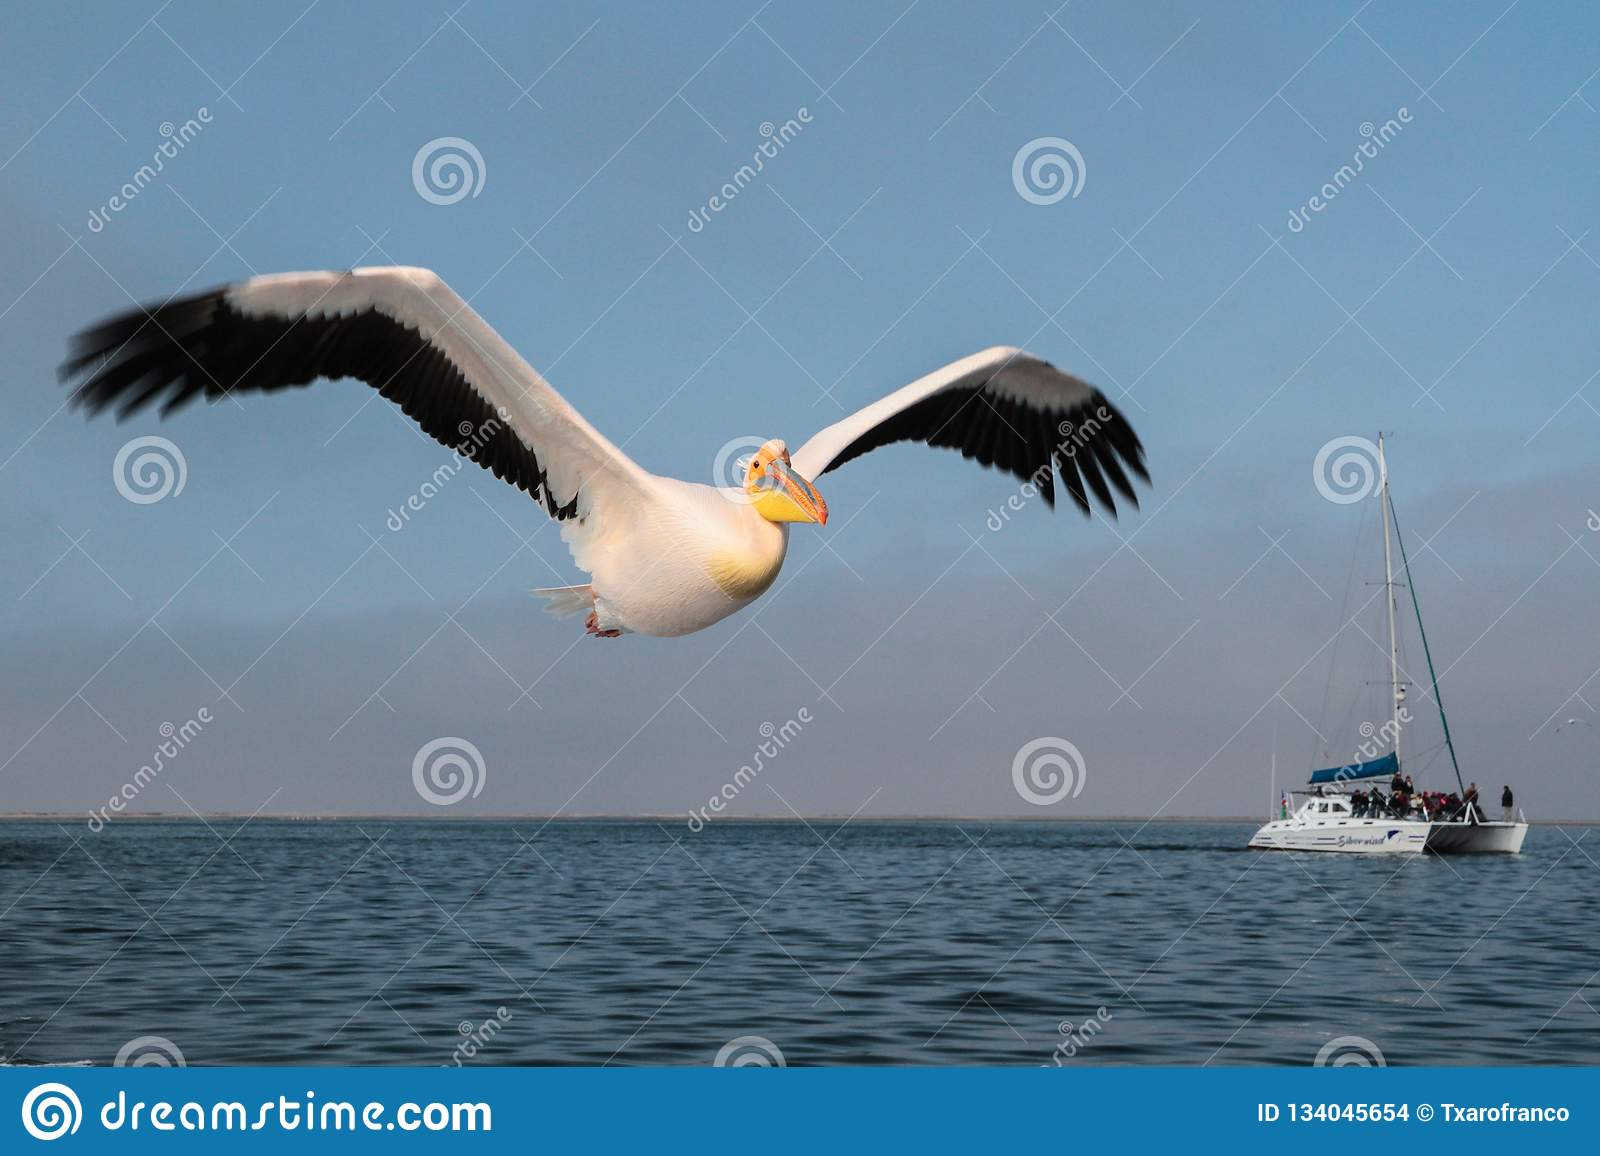 The pelican is flying over the sea in Walvis Bay